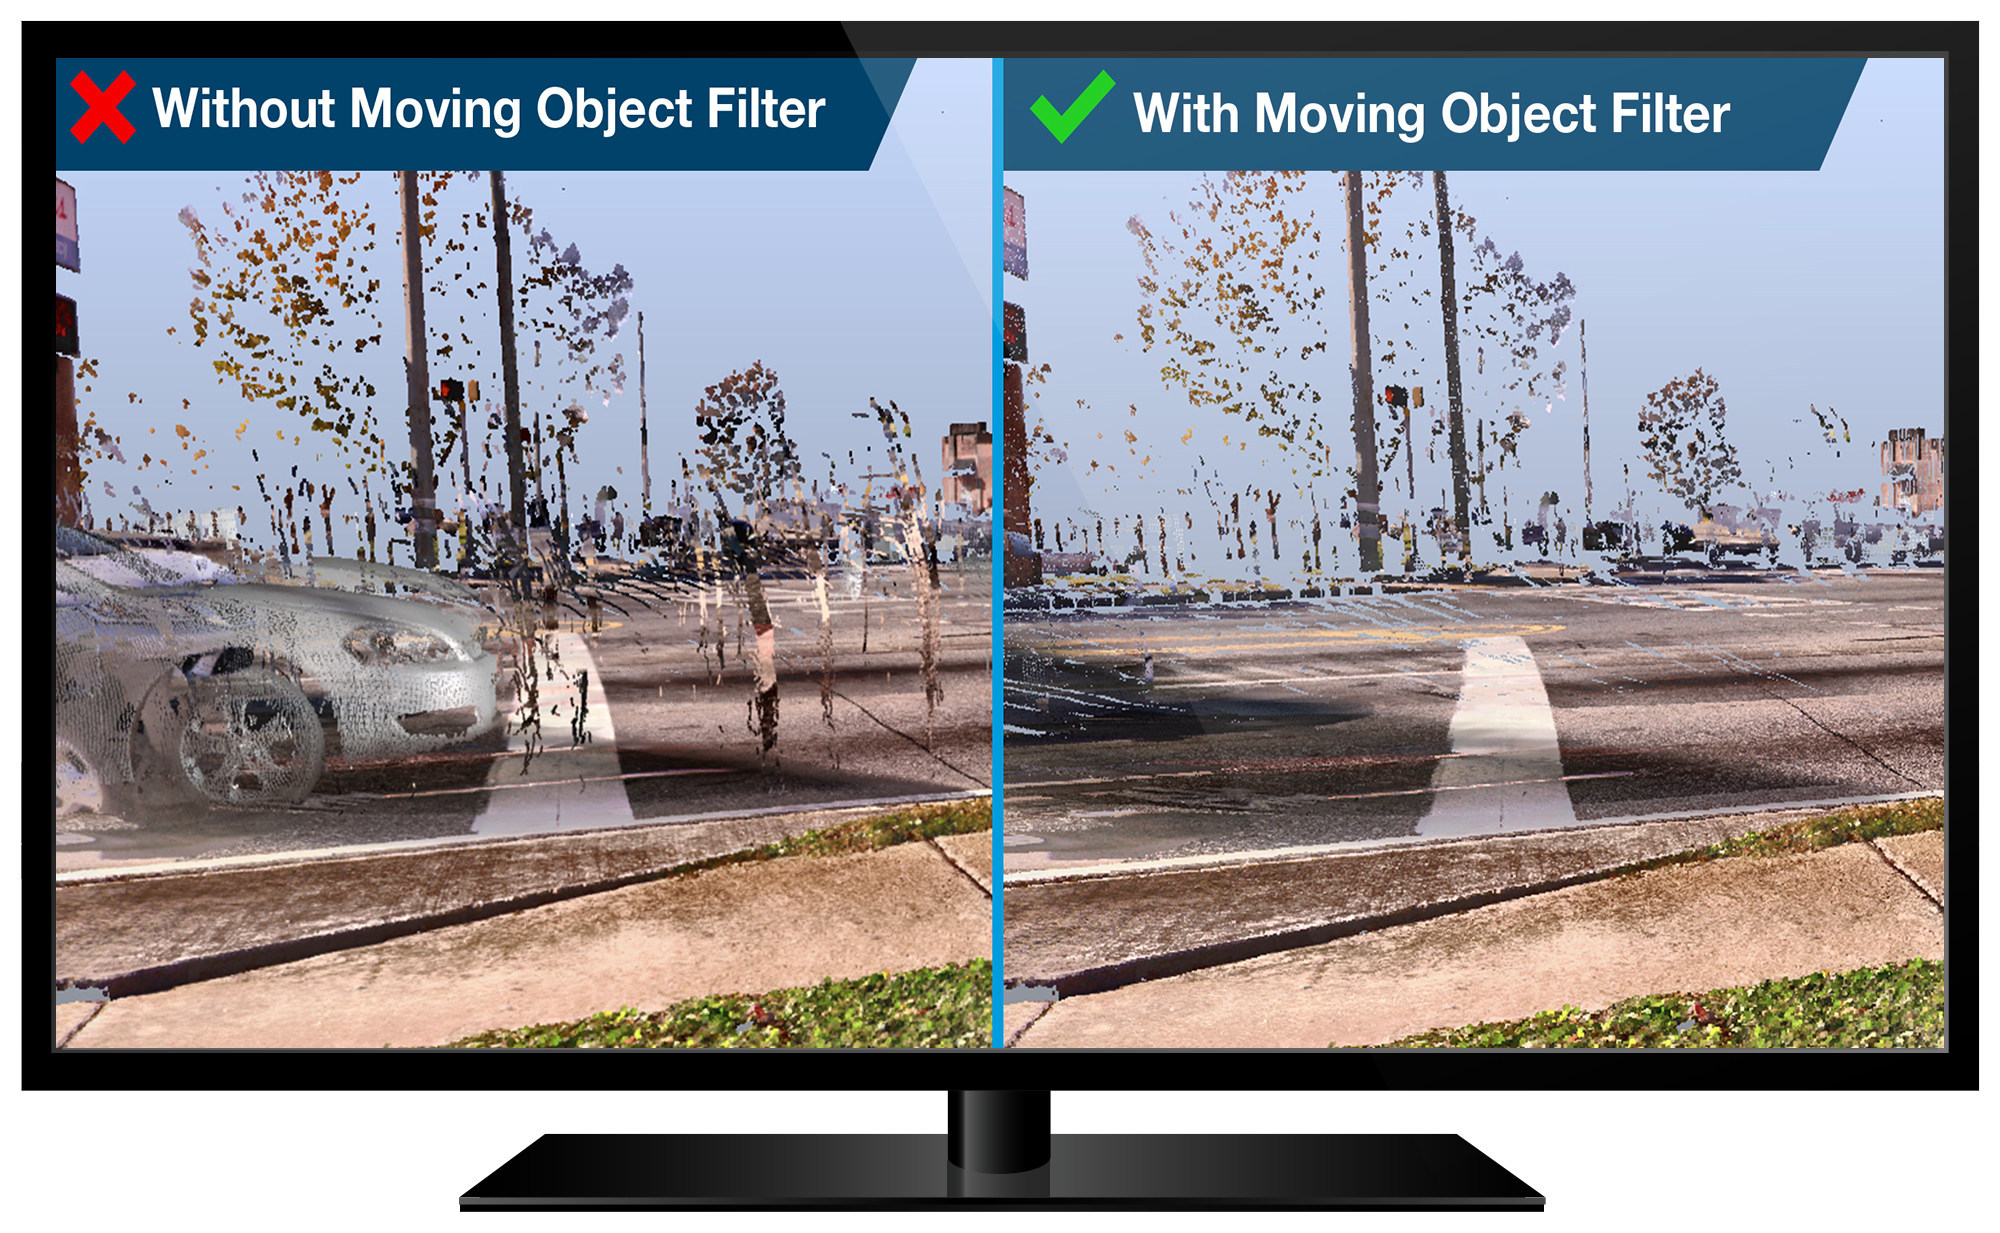 Significantly reduce clean up with FARO's innovative Moving Objects filter.